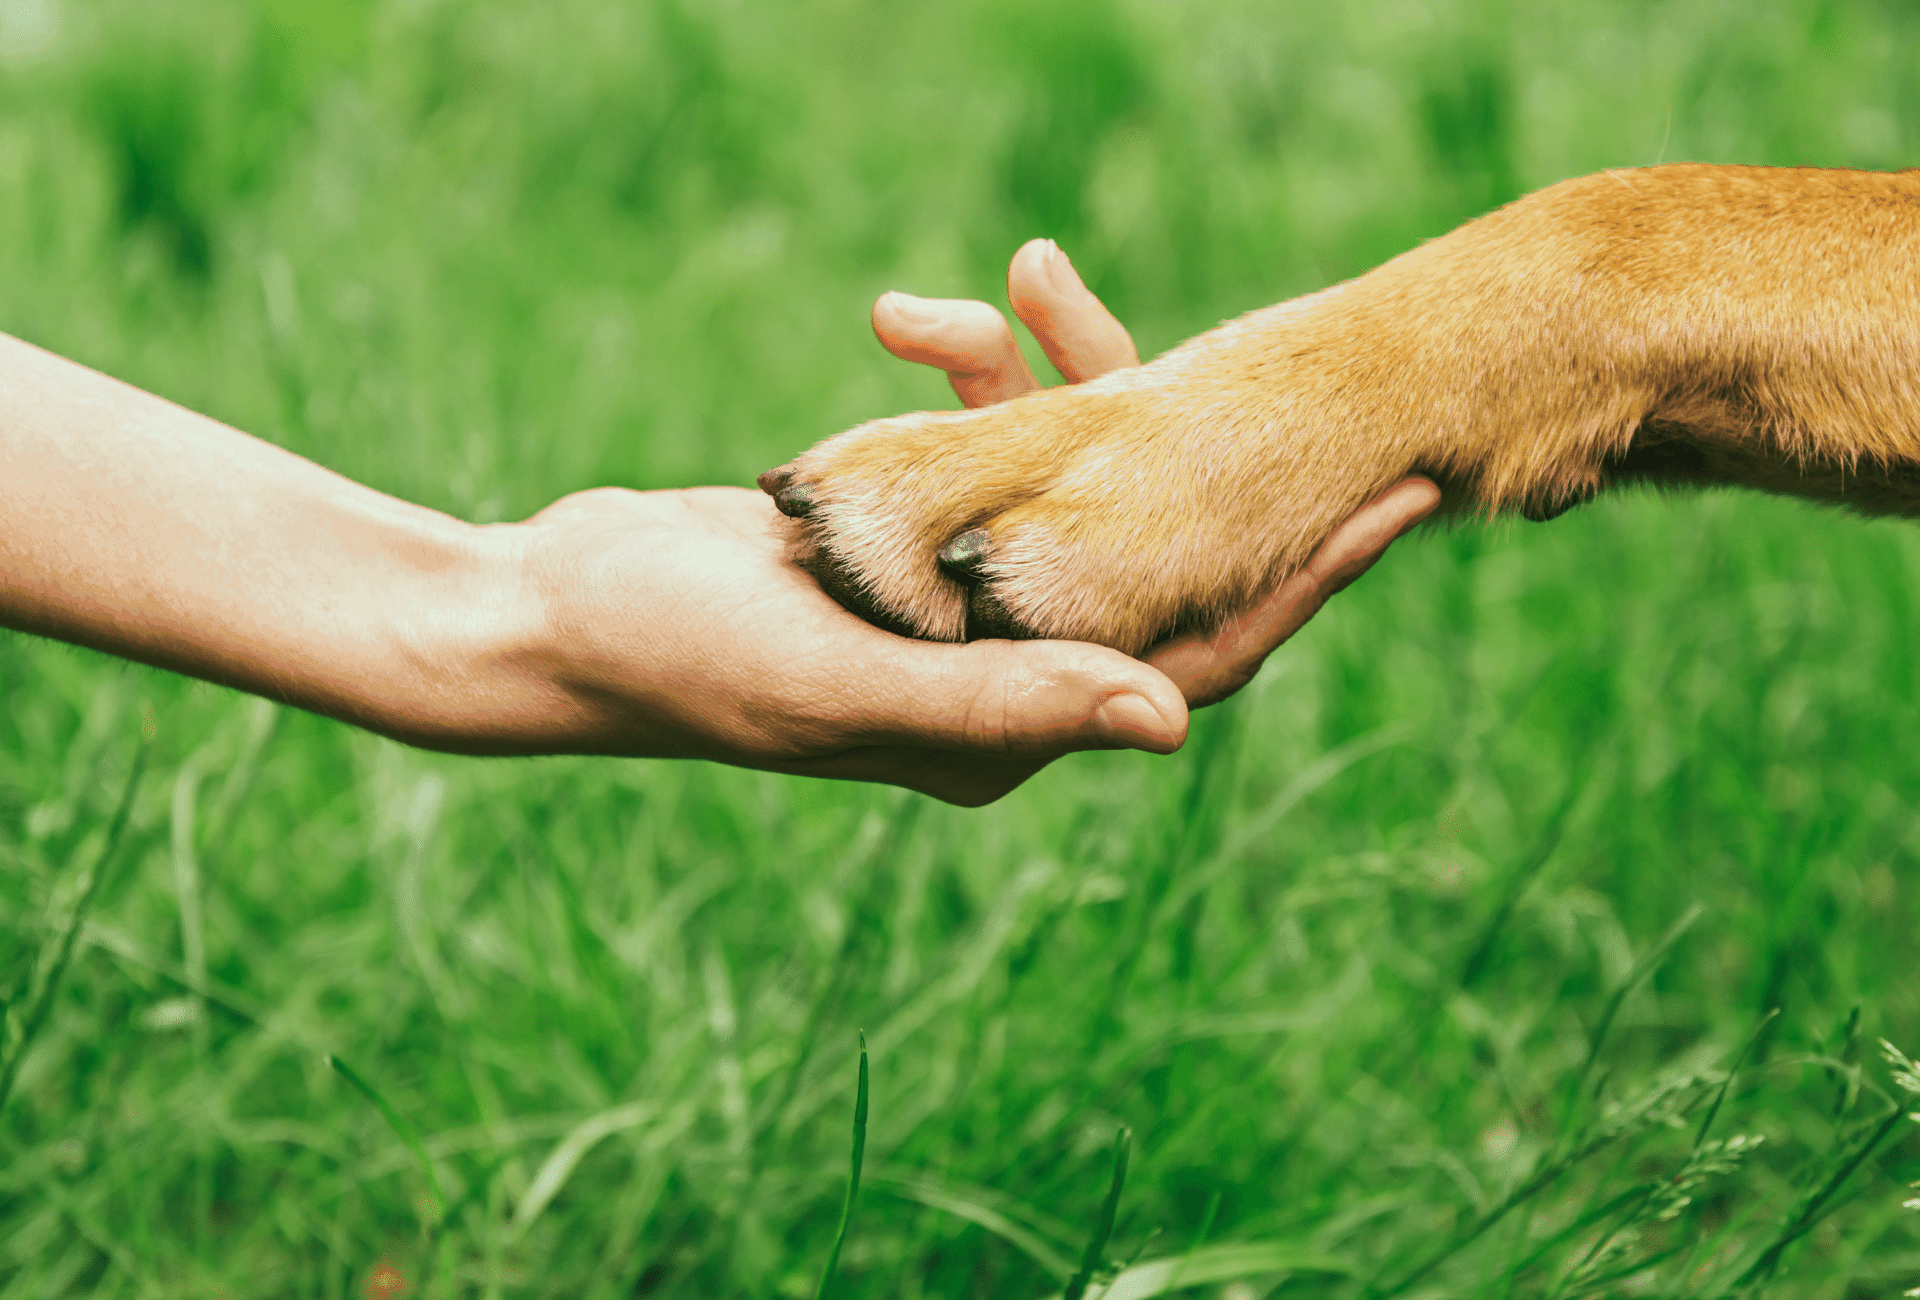 Dog paw reaching for human hand in front of green background.